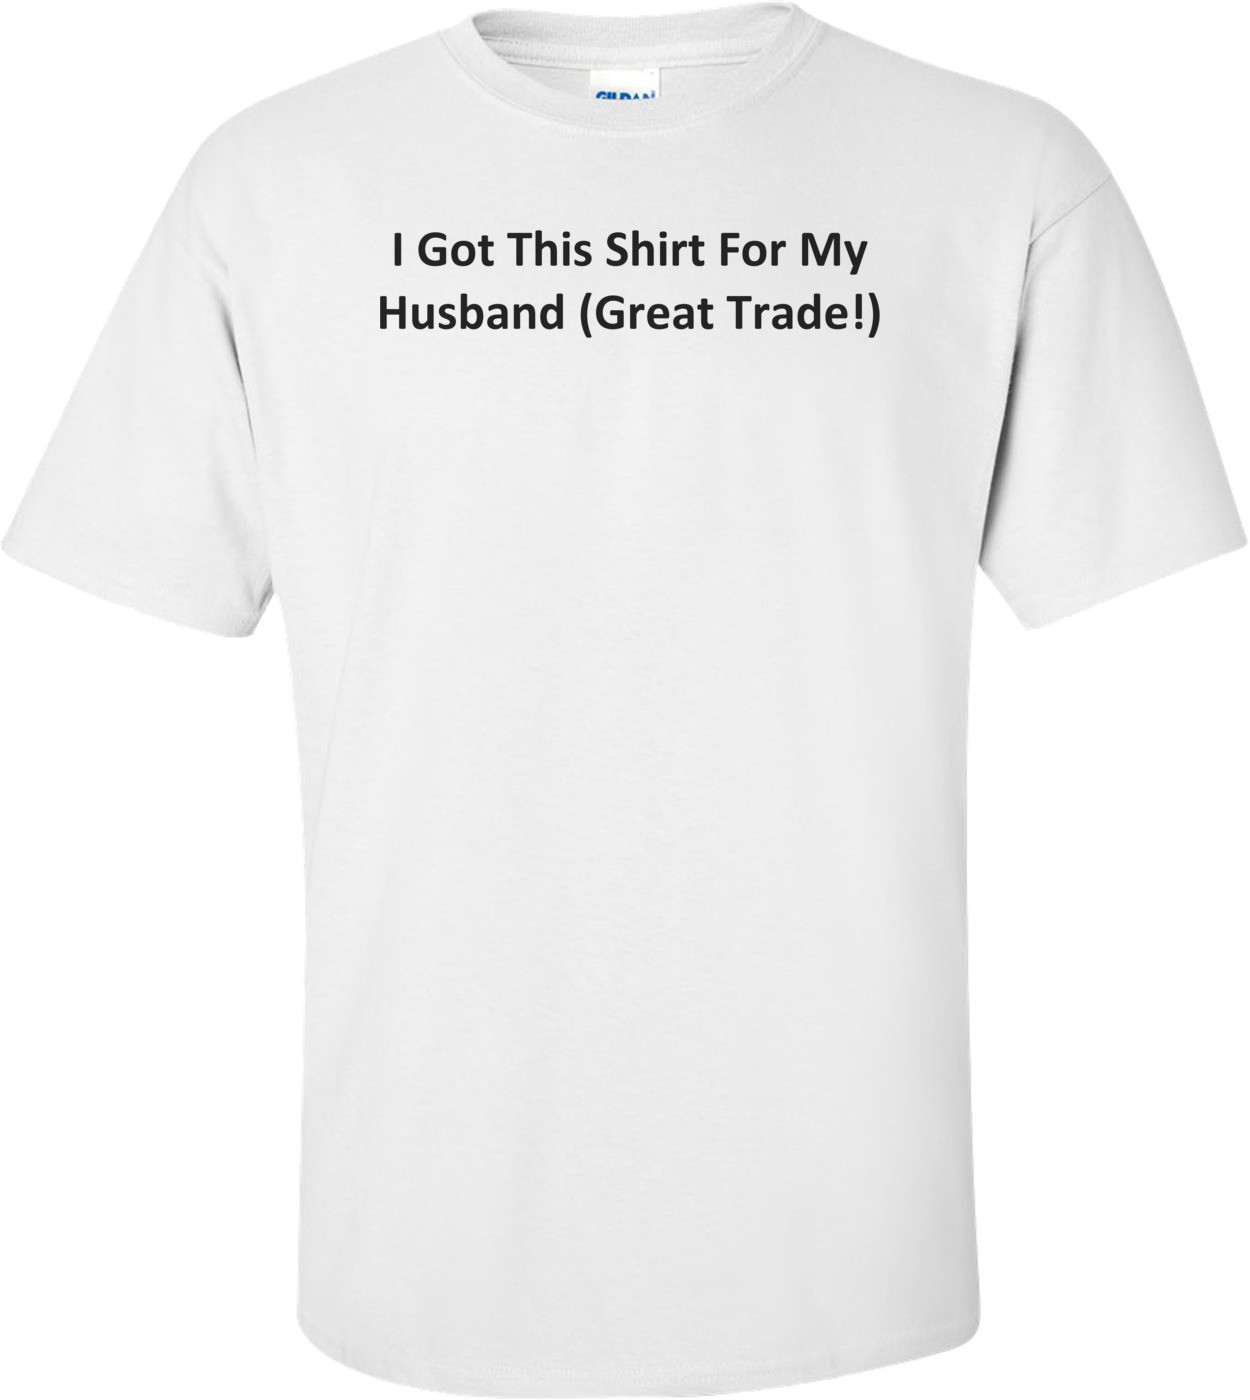 I Got This Shirt For My Husband (Great Trade!) T-Shirt